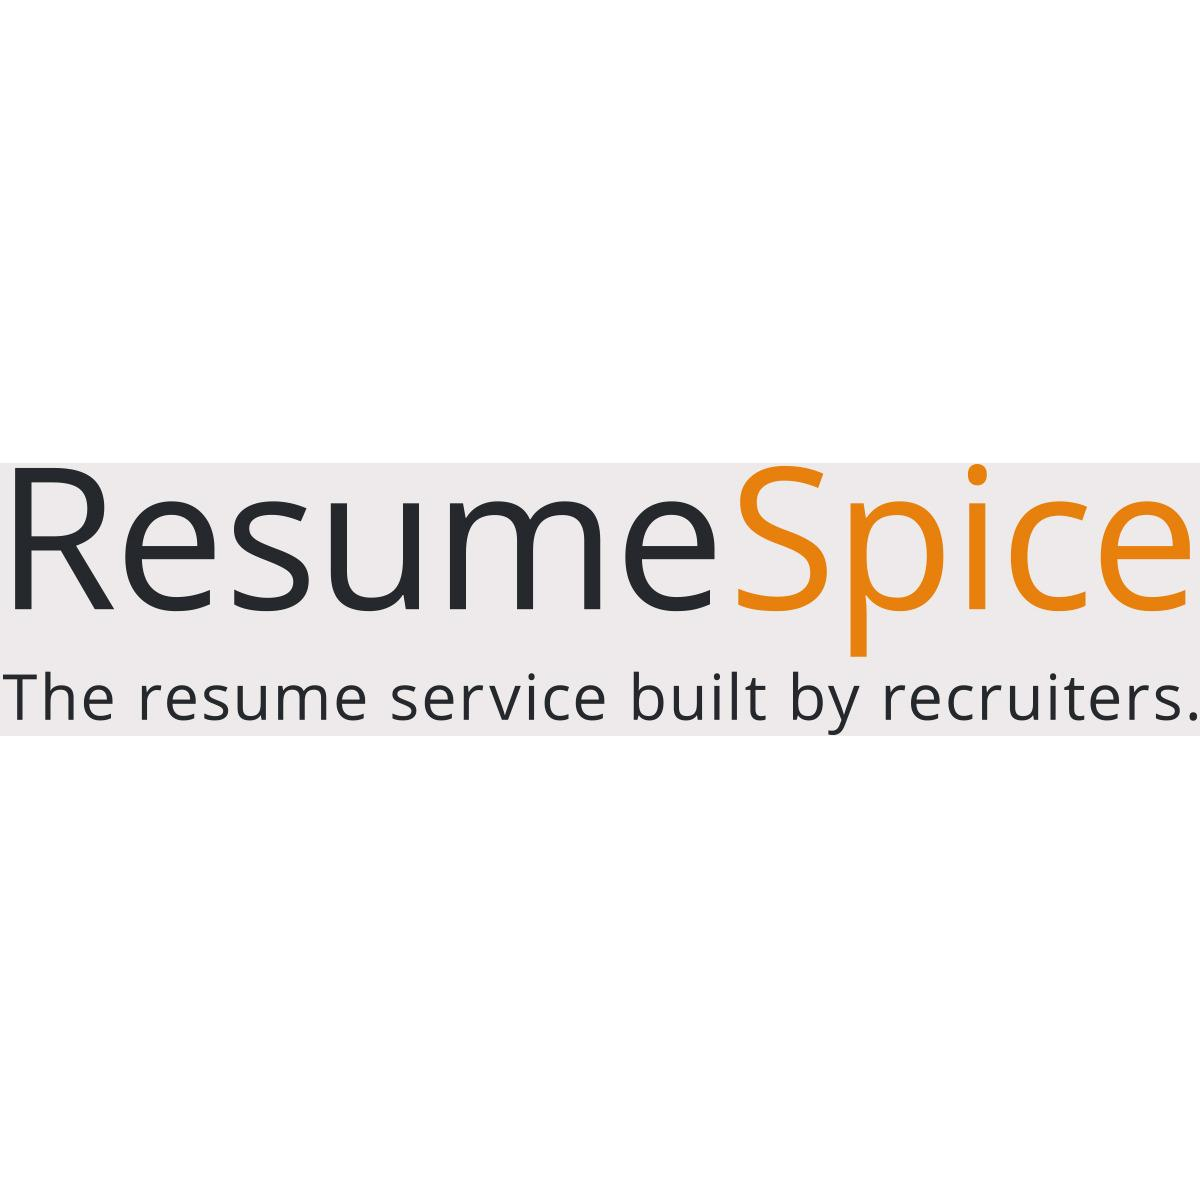 Resumespice Professional Resume Writing And Career Coaching